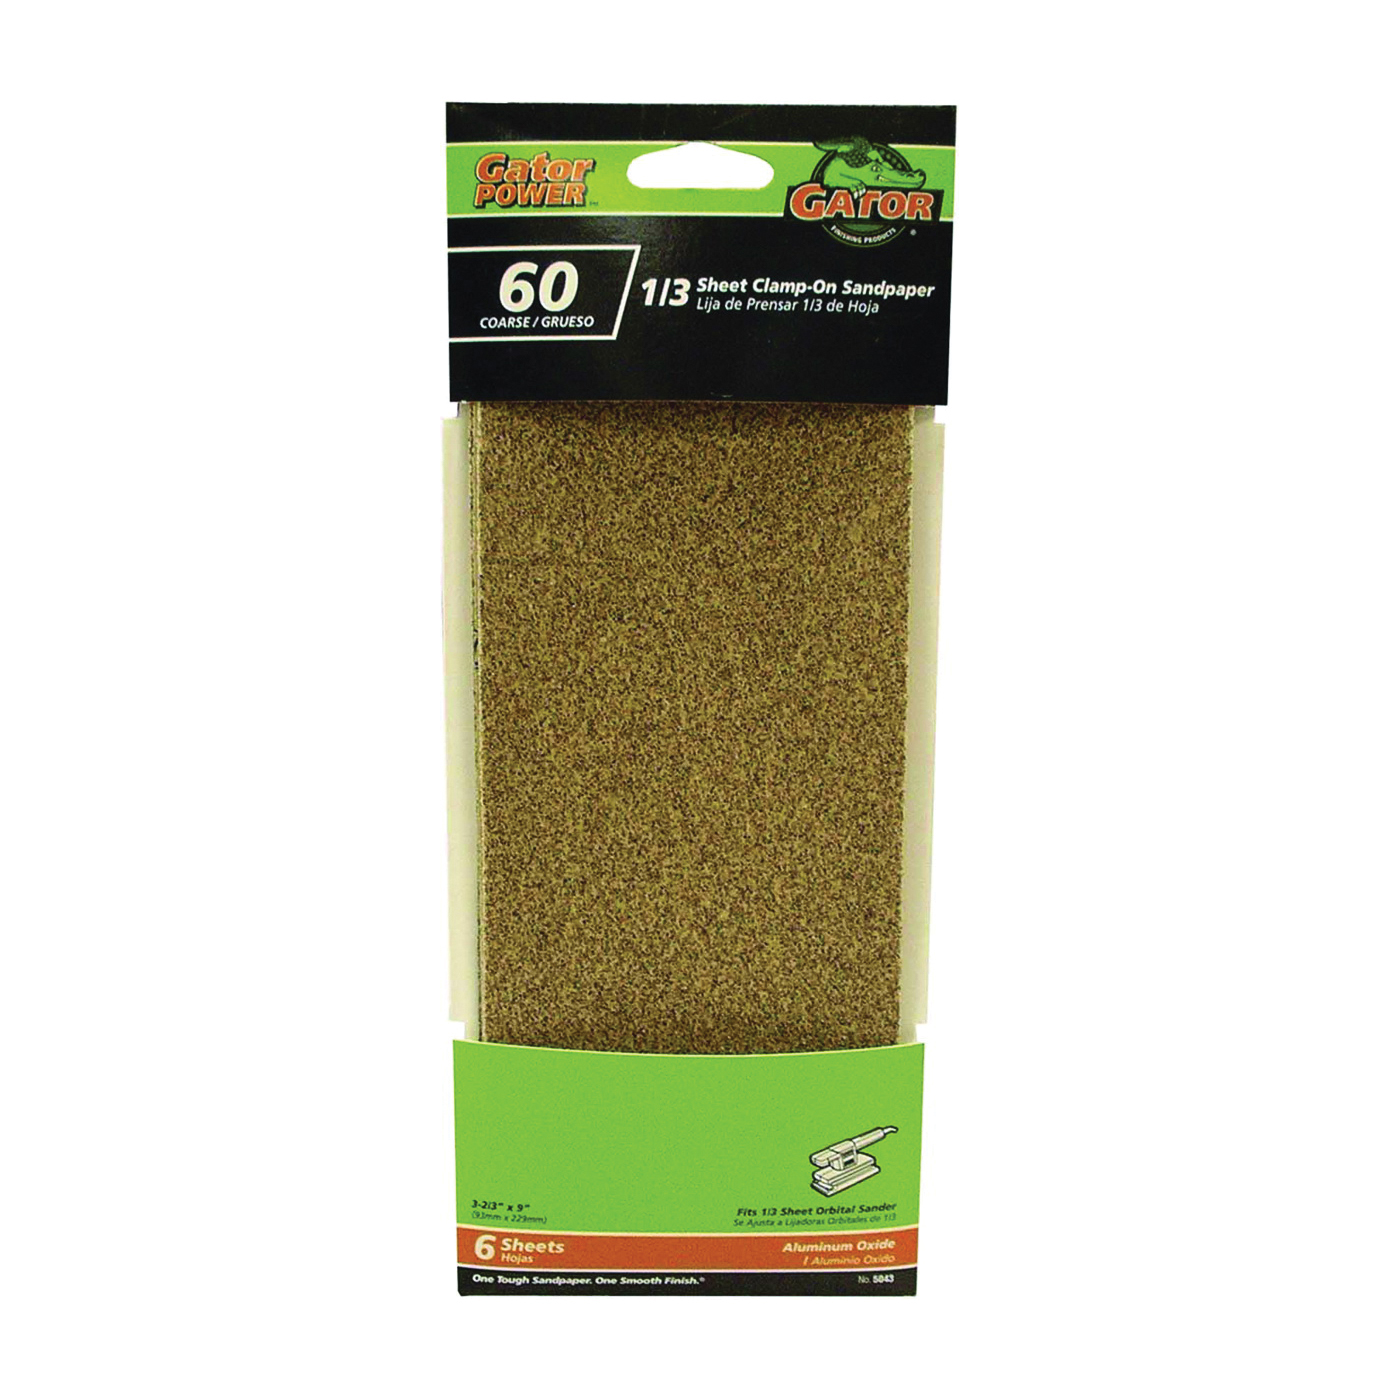 Picture of Gator 5043 Sanding Sheet, 3-2/3 in W, 9 in L, 60 Grit, Coarse, Aluminum Oxide Abrasive, Paper Backing